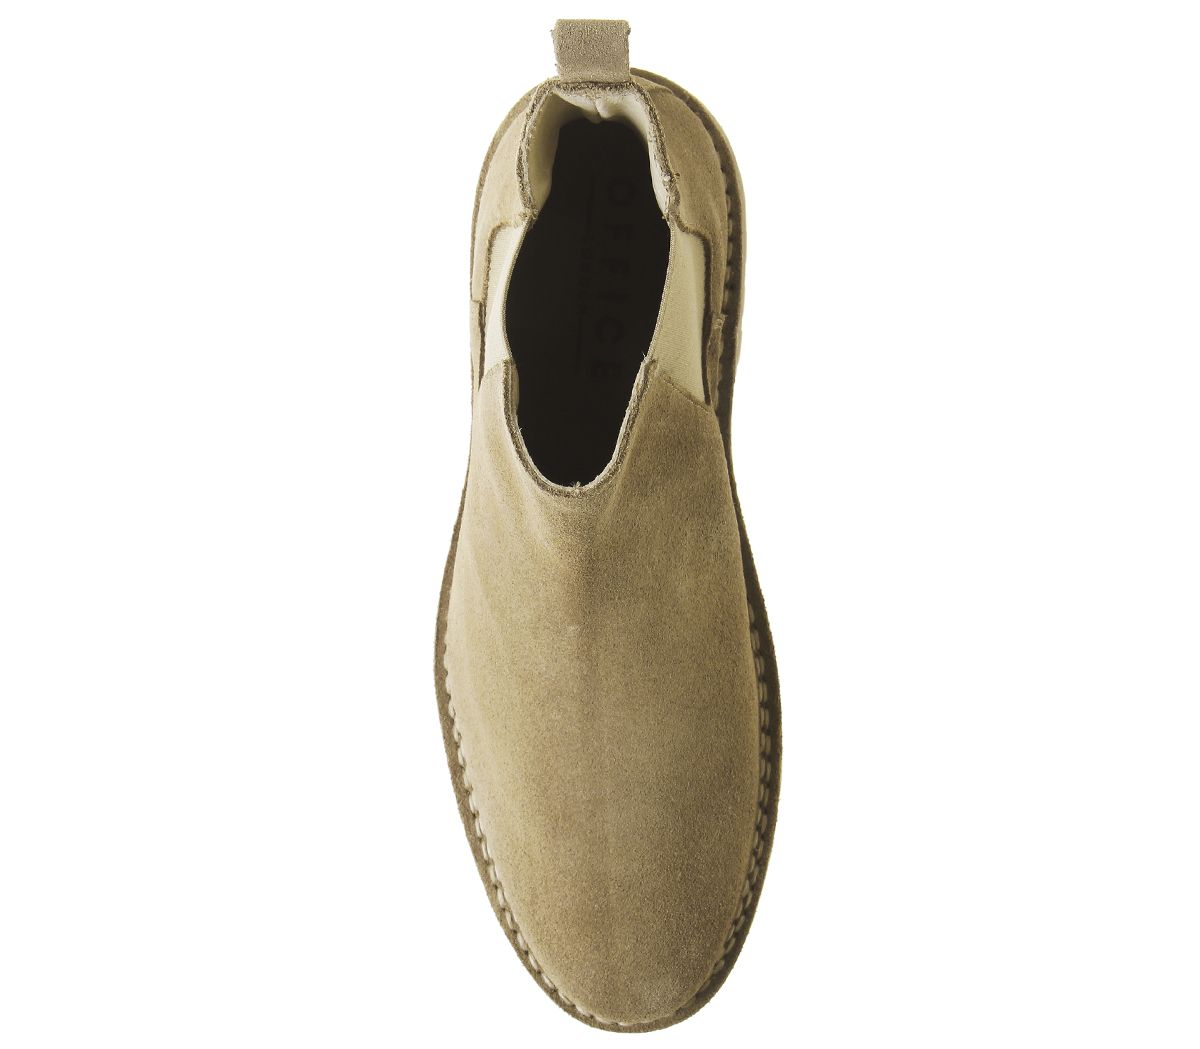 Mens-Office-Impala-Chelsea-Boots-Beige-Suede-Boots thumbnail 10